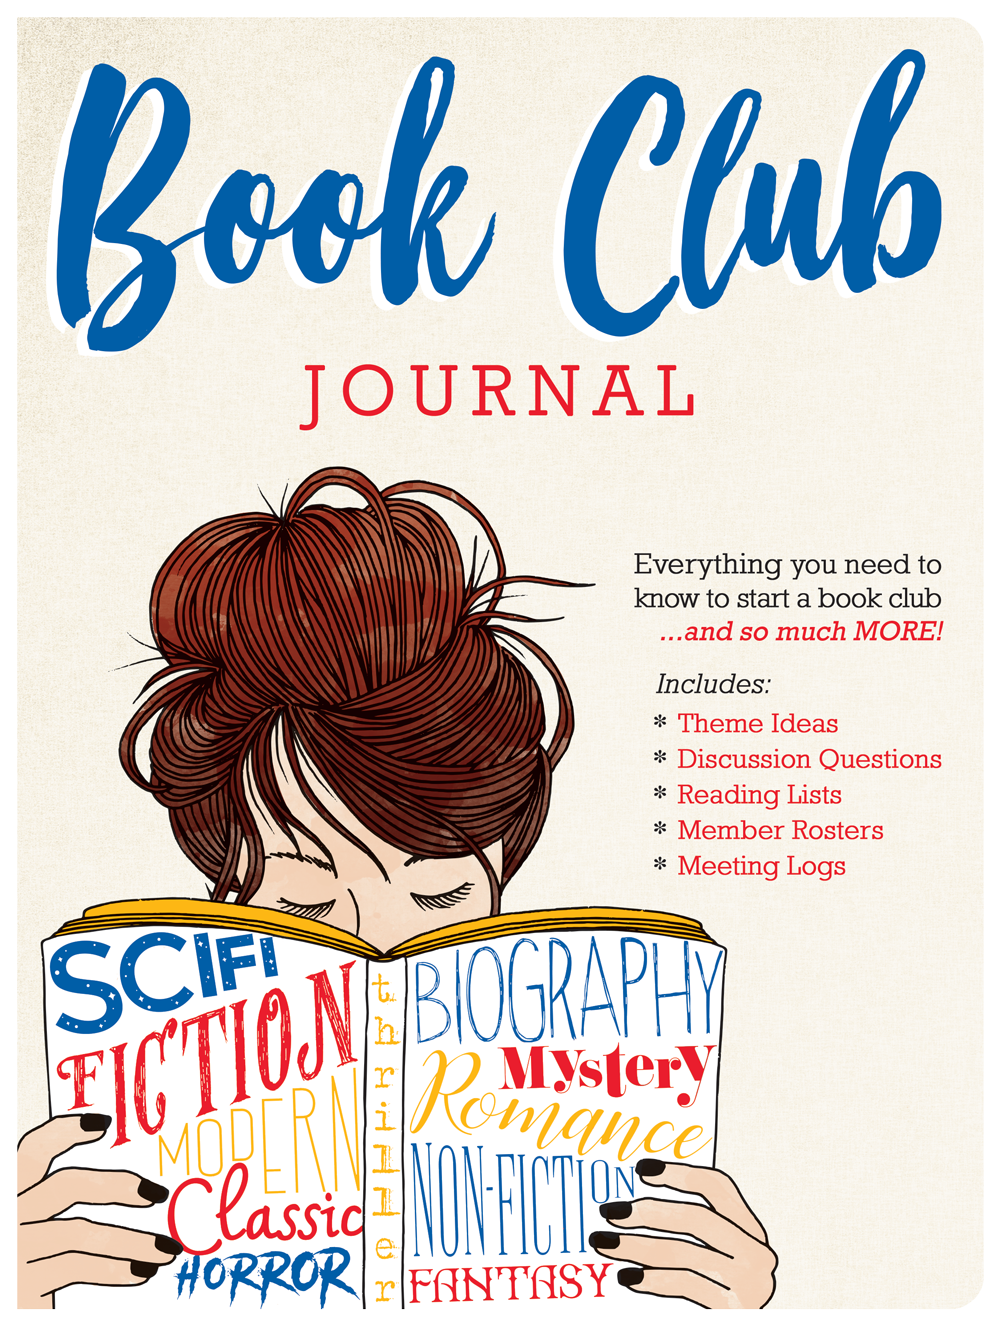 Book Club Journal